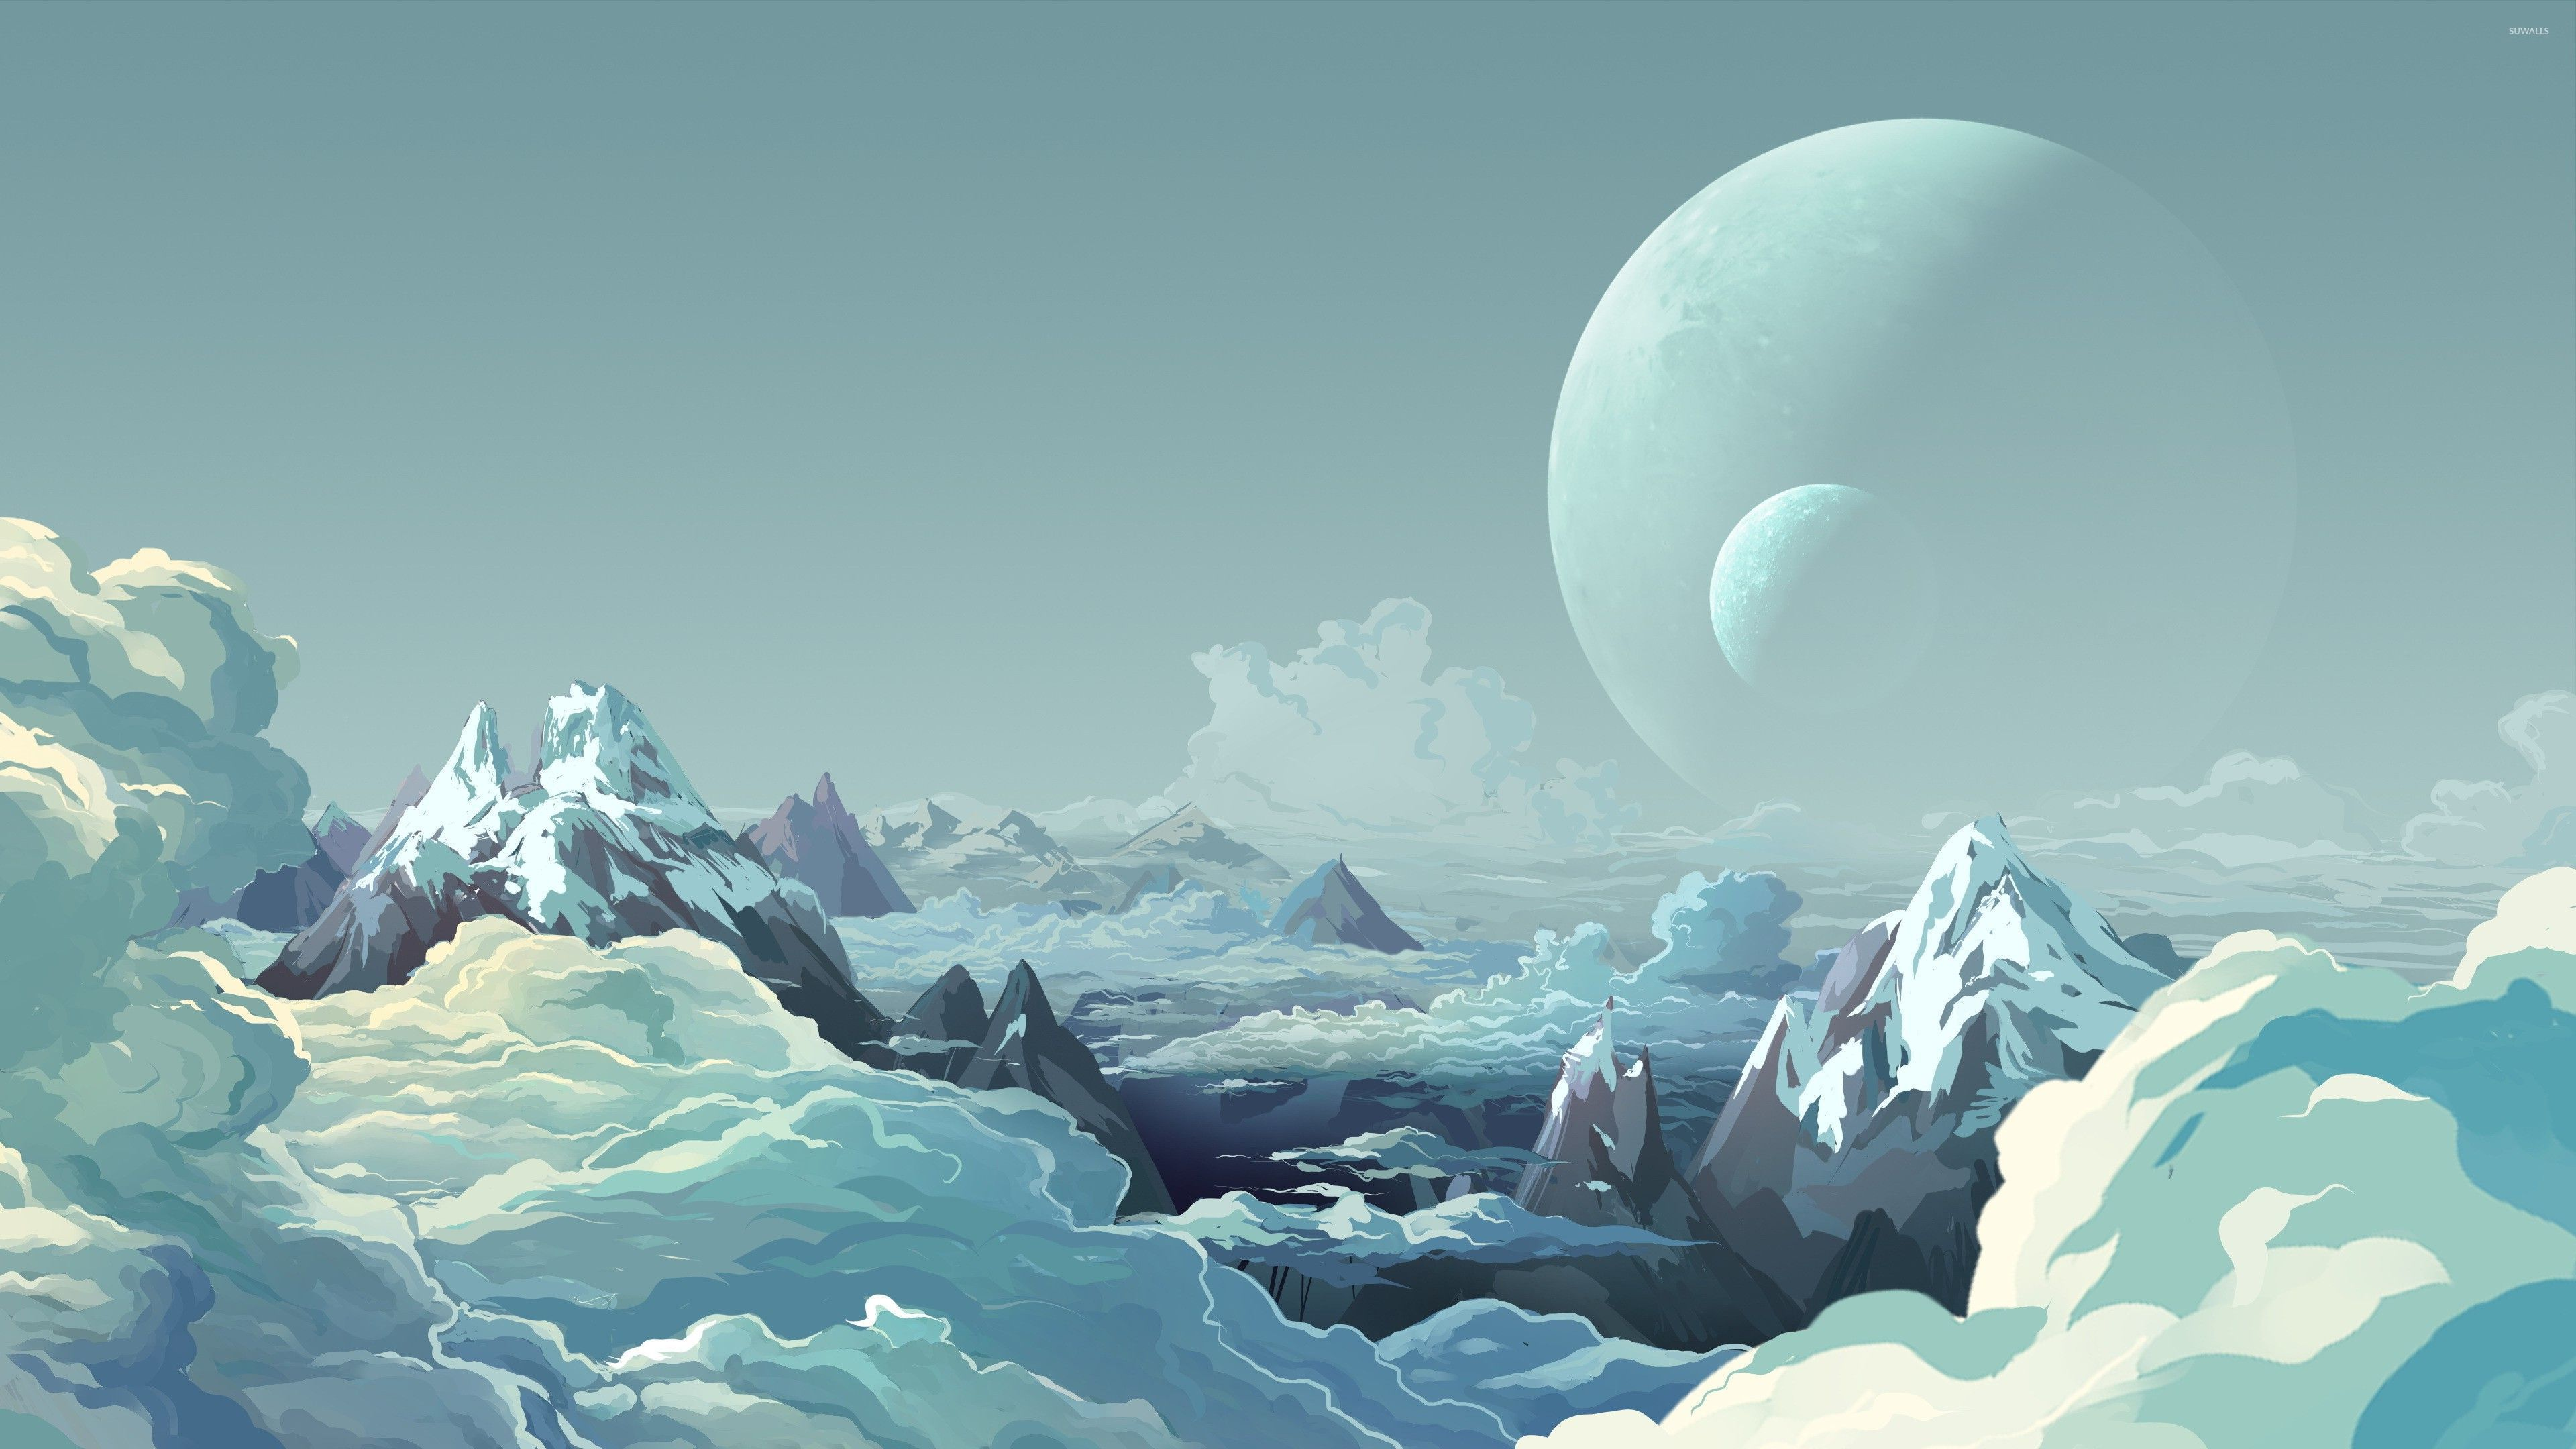 Mountain Peaks Above The Clouds And Moons In The Sky Wallpaper Vector Wallpapers 28034